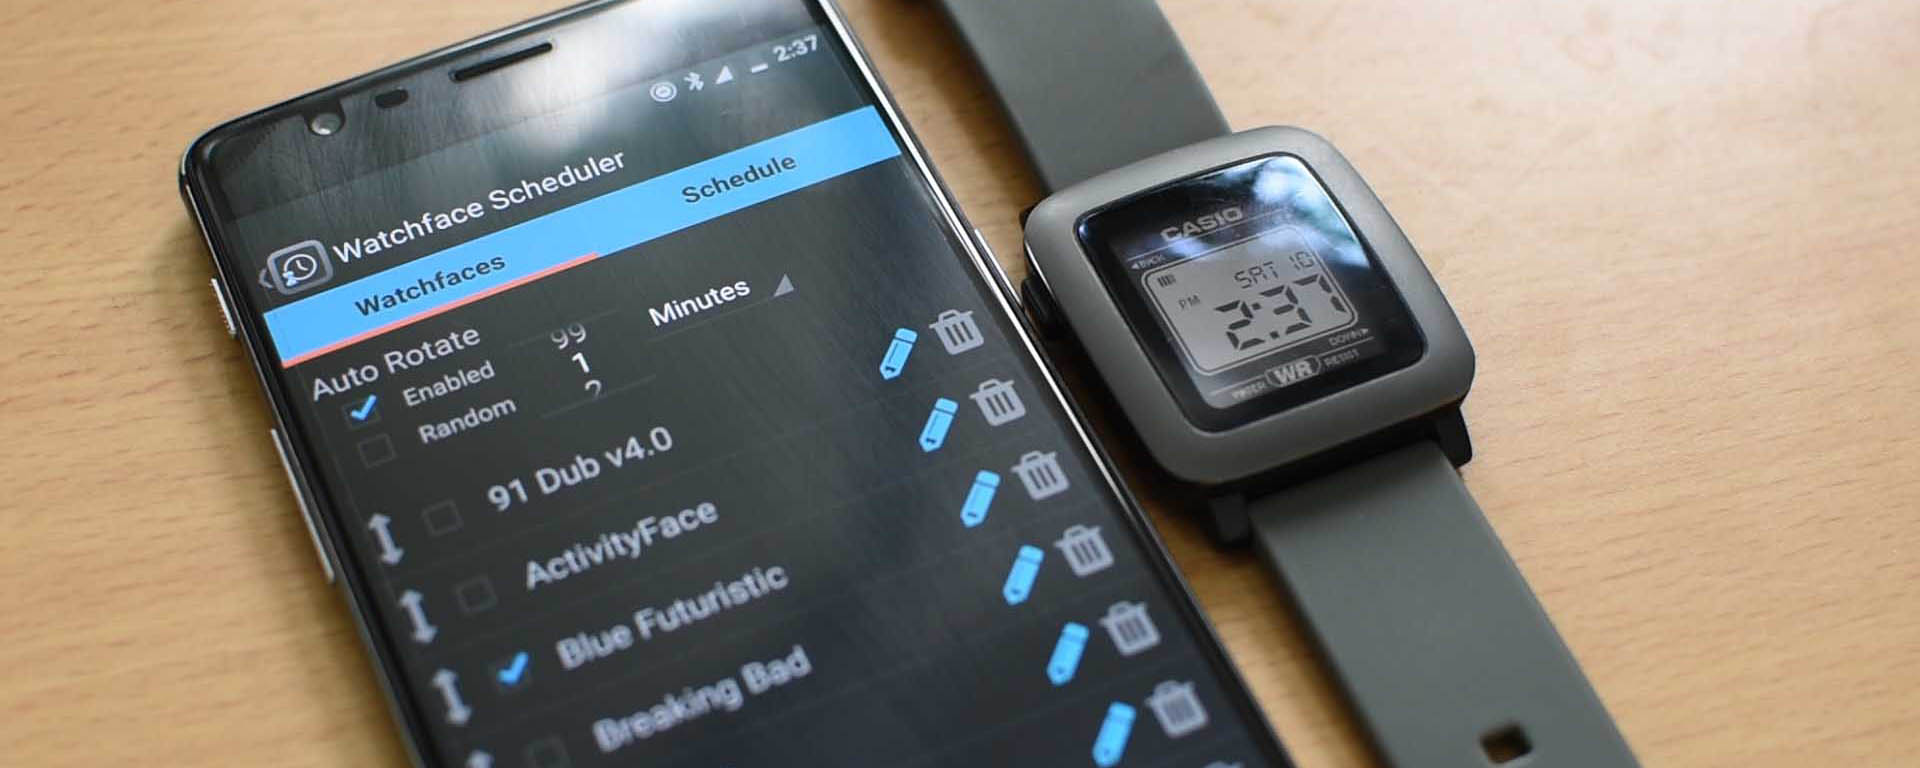 CASIO - Switch between watchfaces automatically